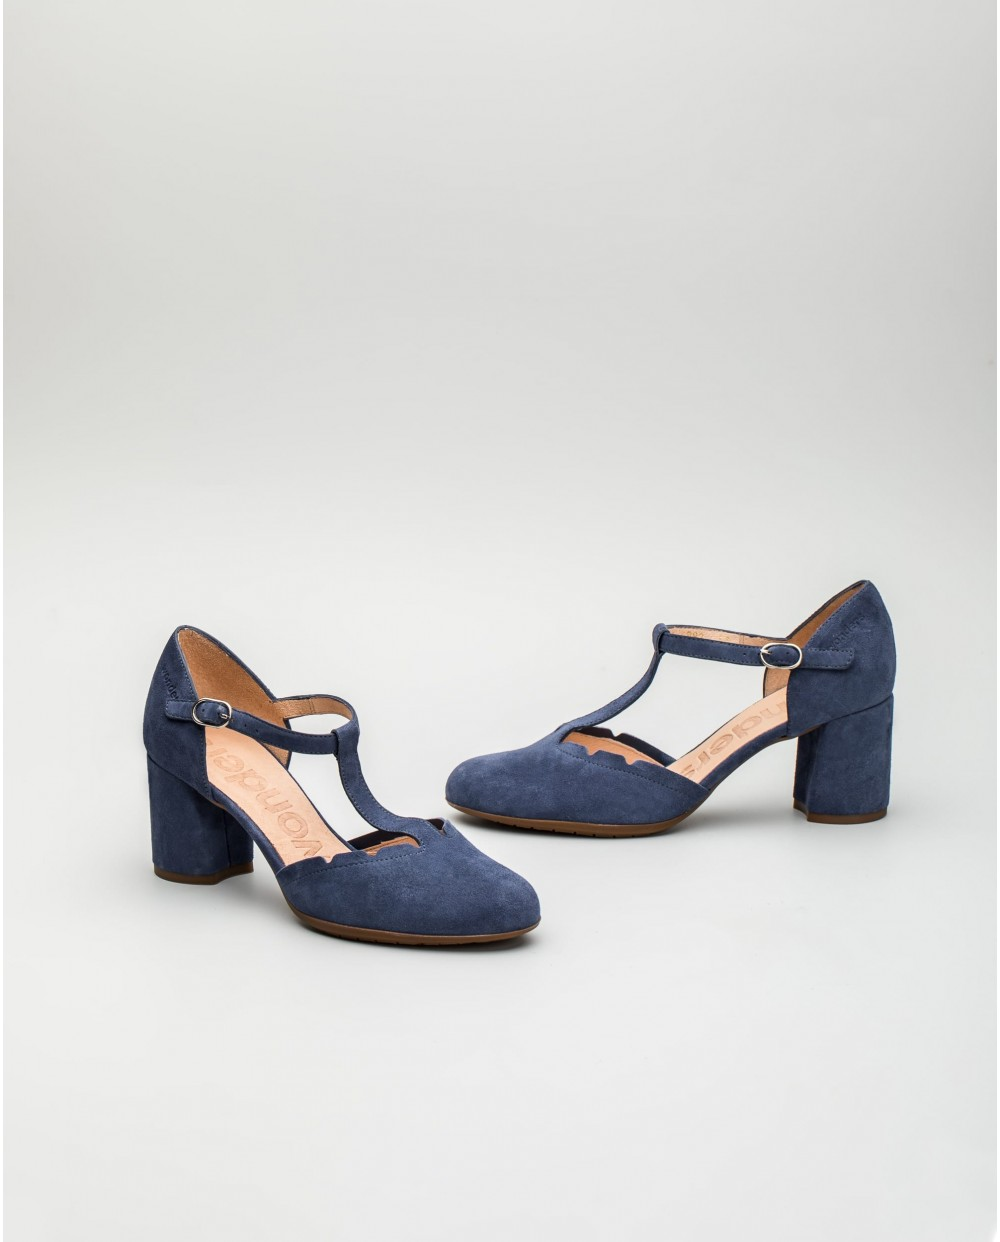 Wonders-Outlet-Sandals with criss/cross straps